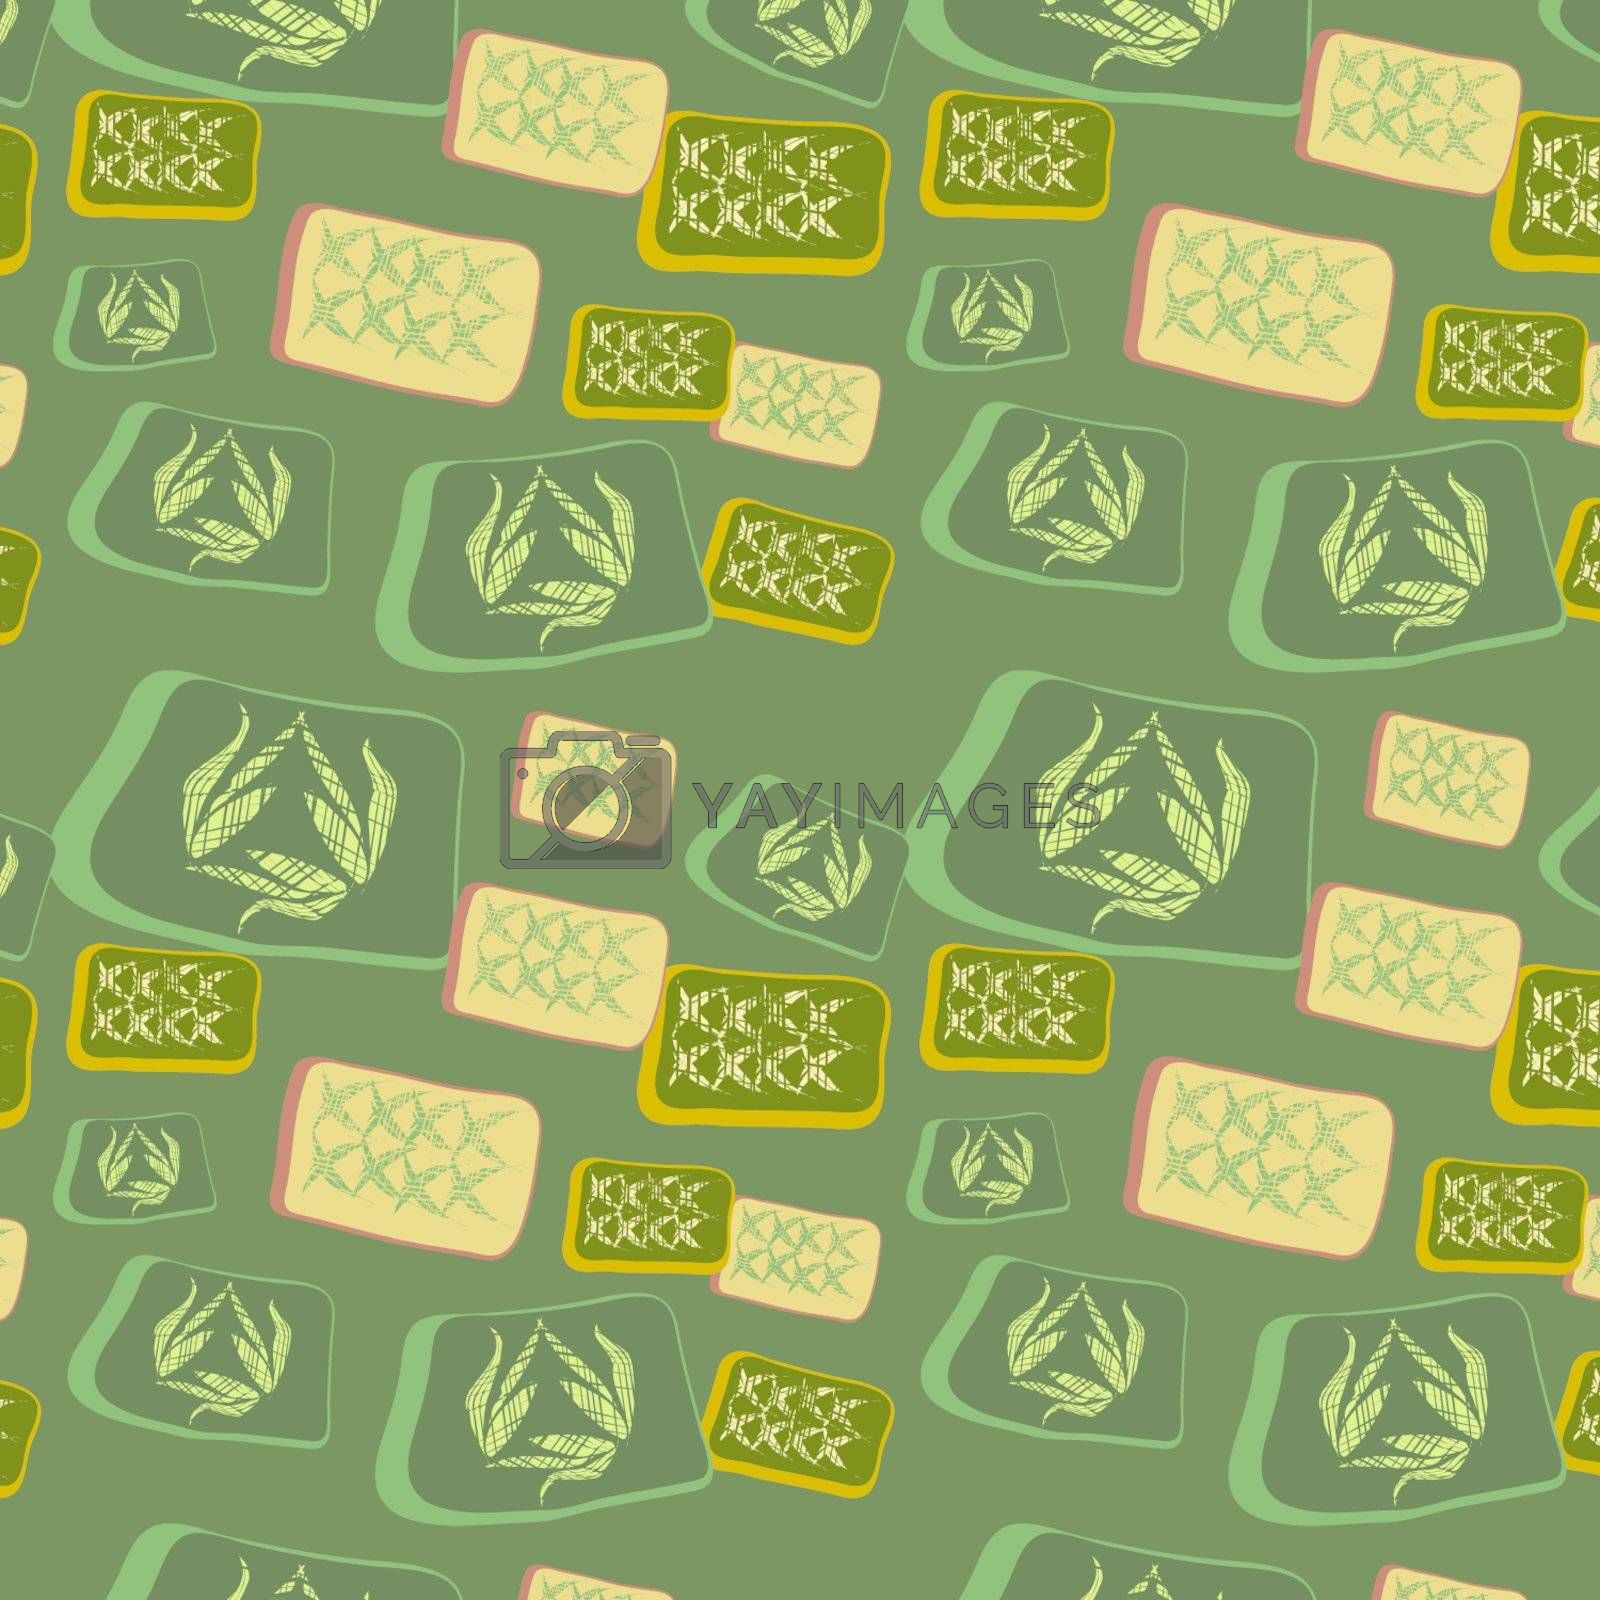 Original seamless background with squares, vector, illustration